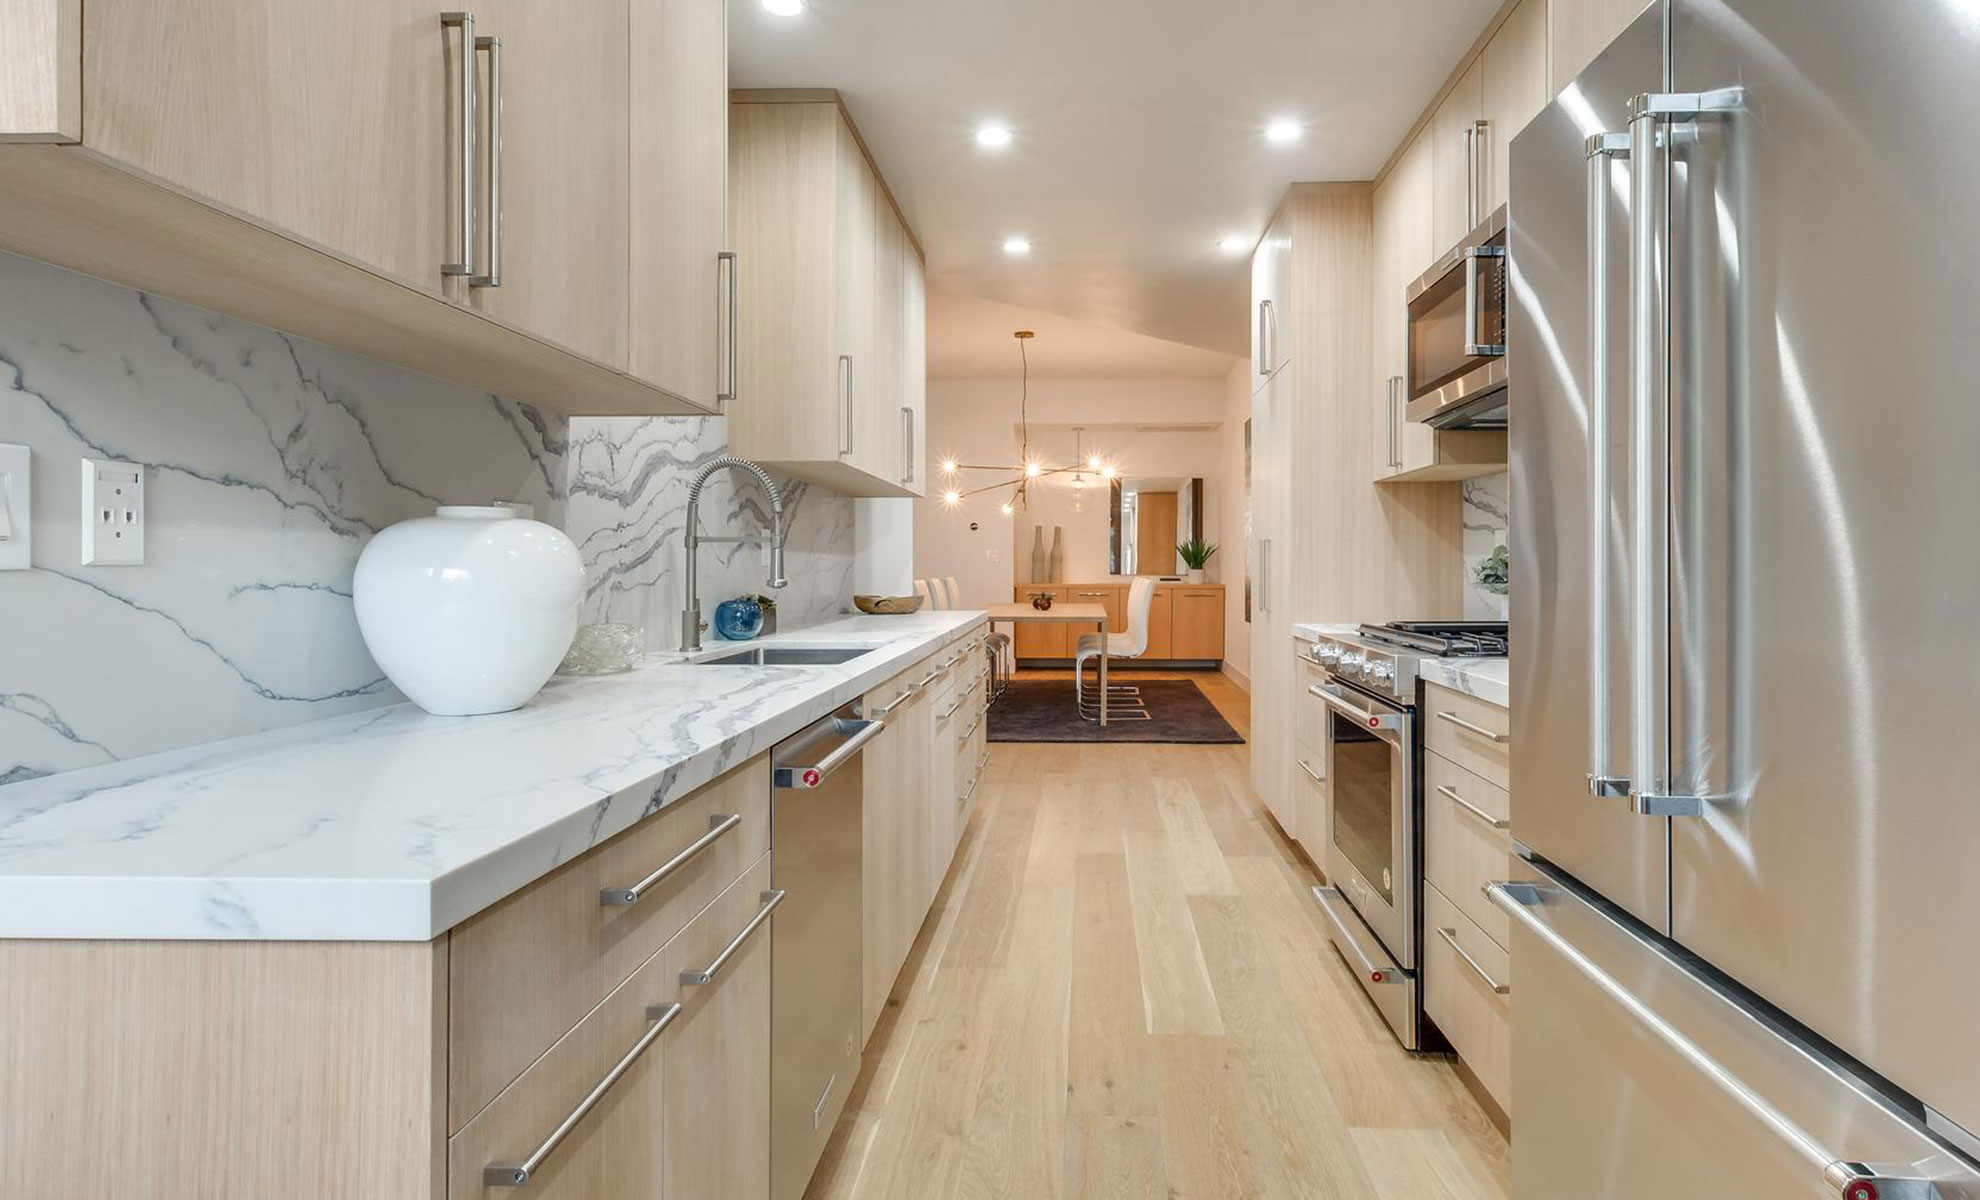 Everyday Cleaning For On A Quartz Countertop